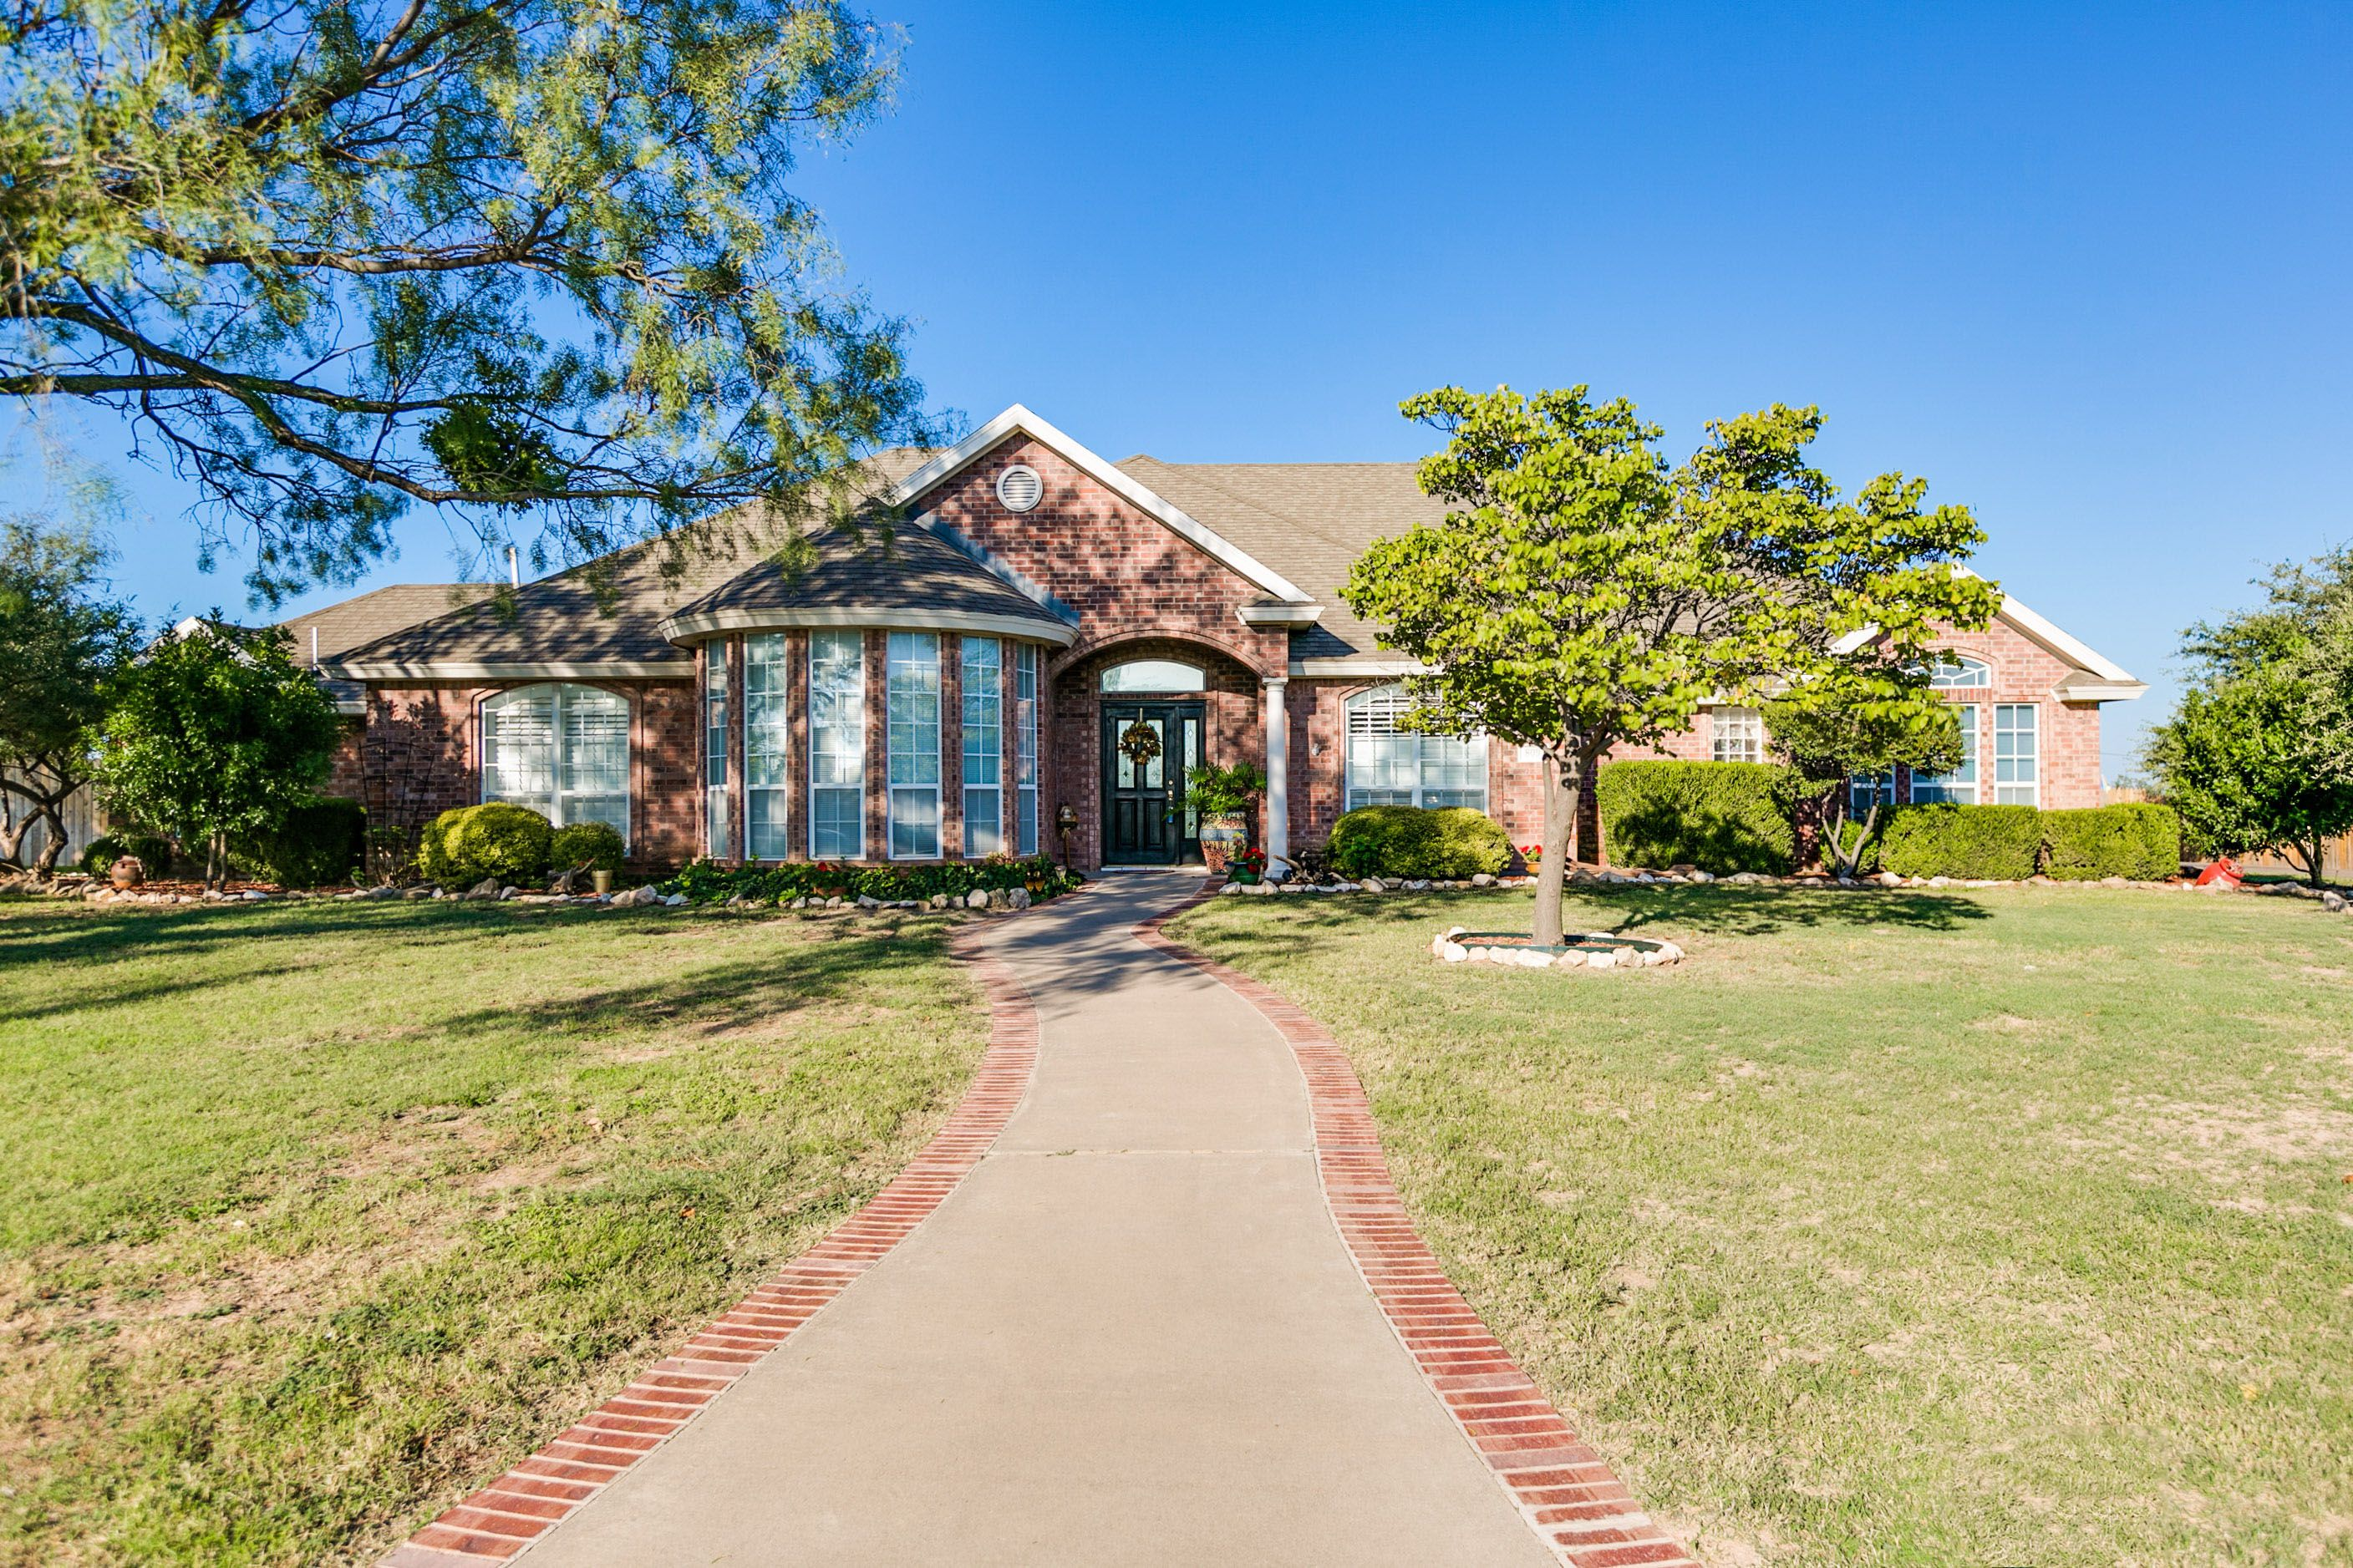 809 Avondale Dr San Angelo Tx For Sale 329 500 Homes For Sale